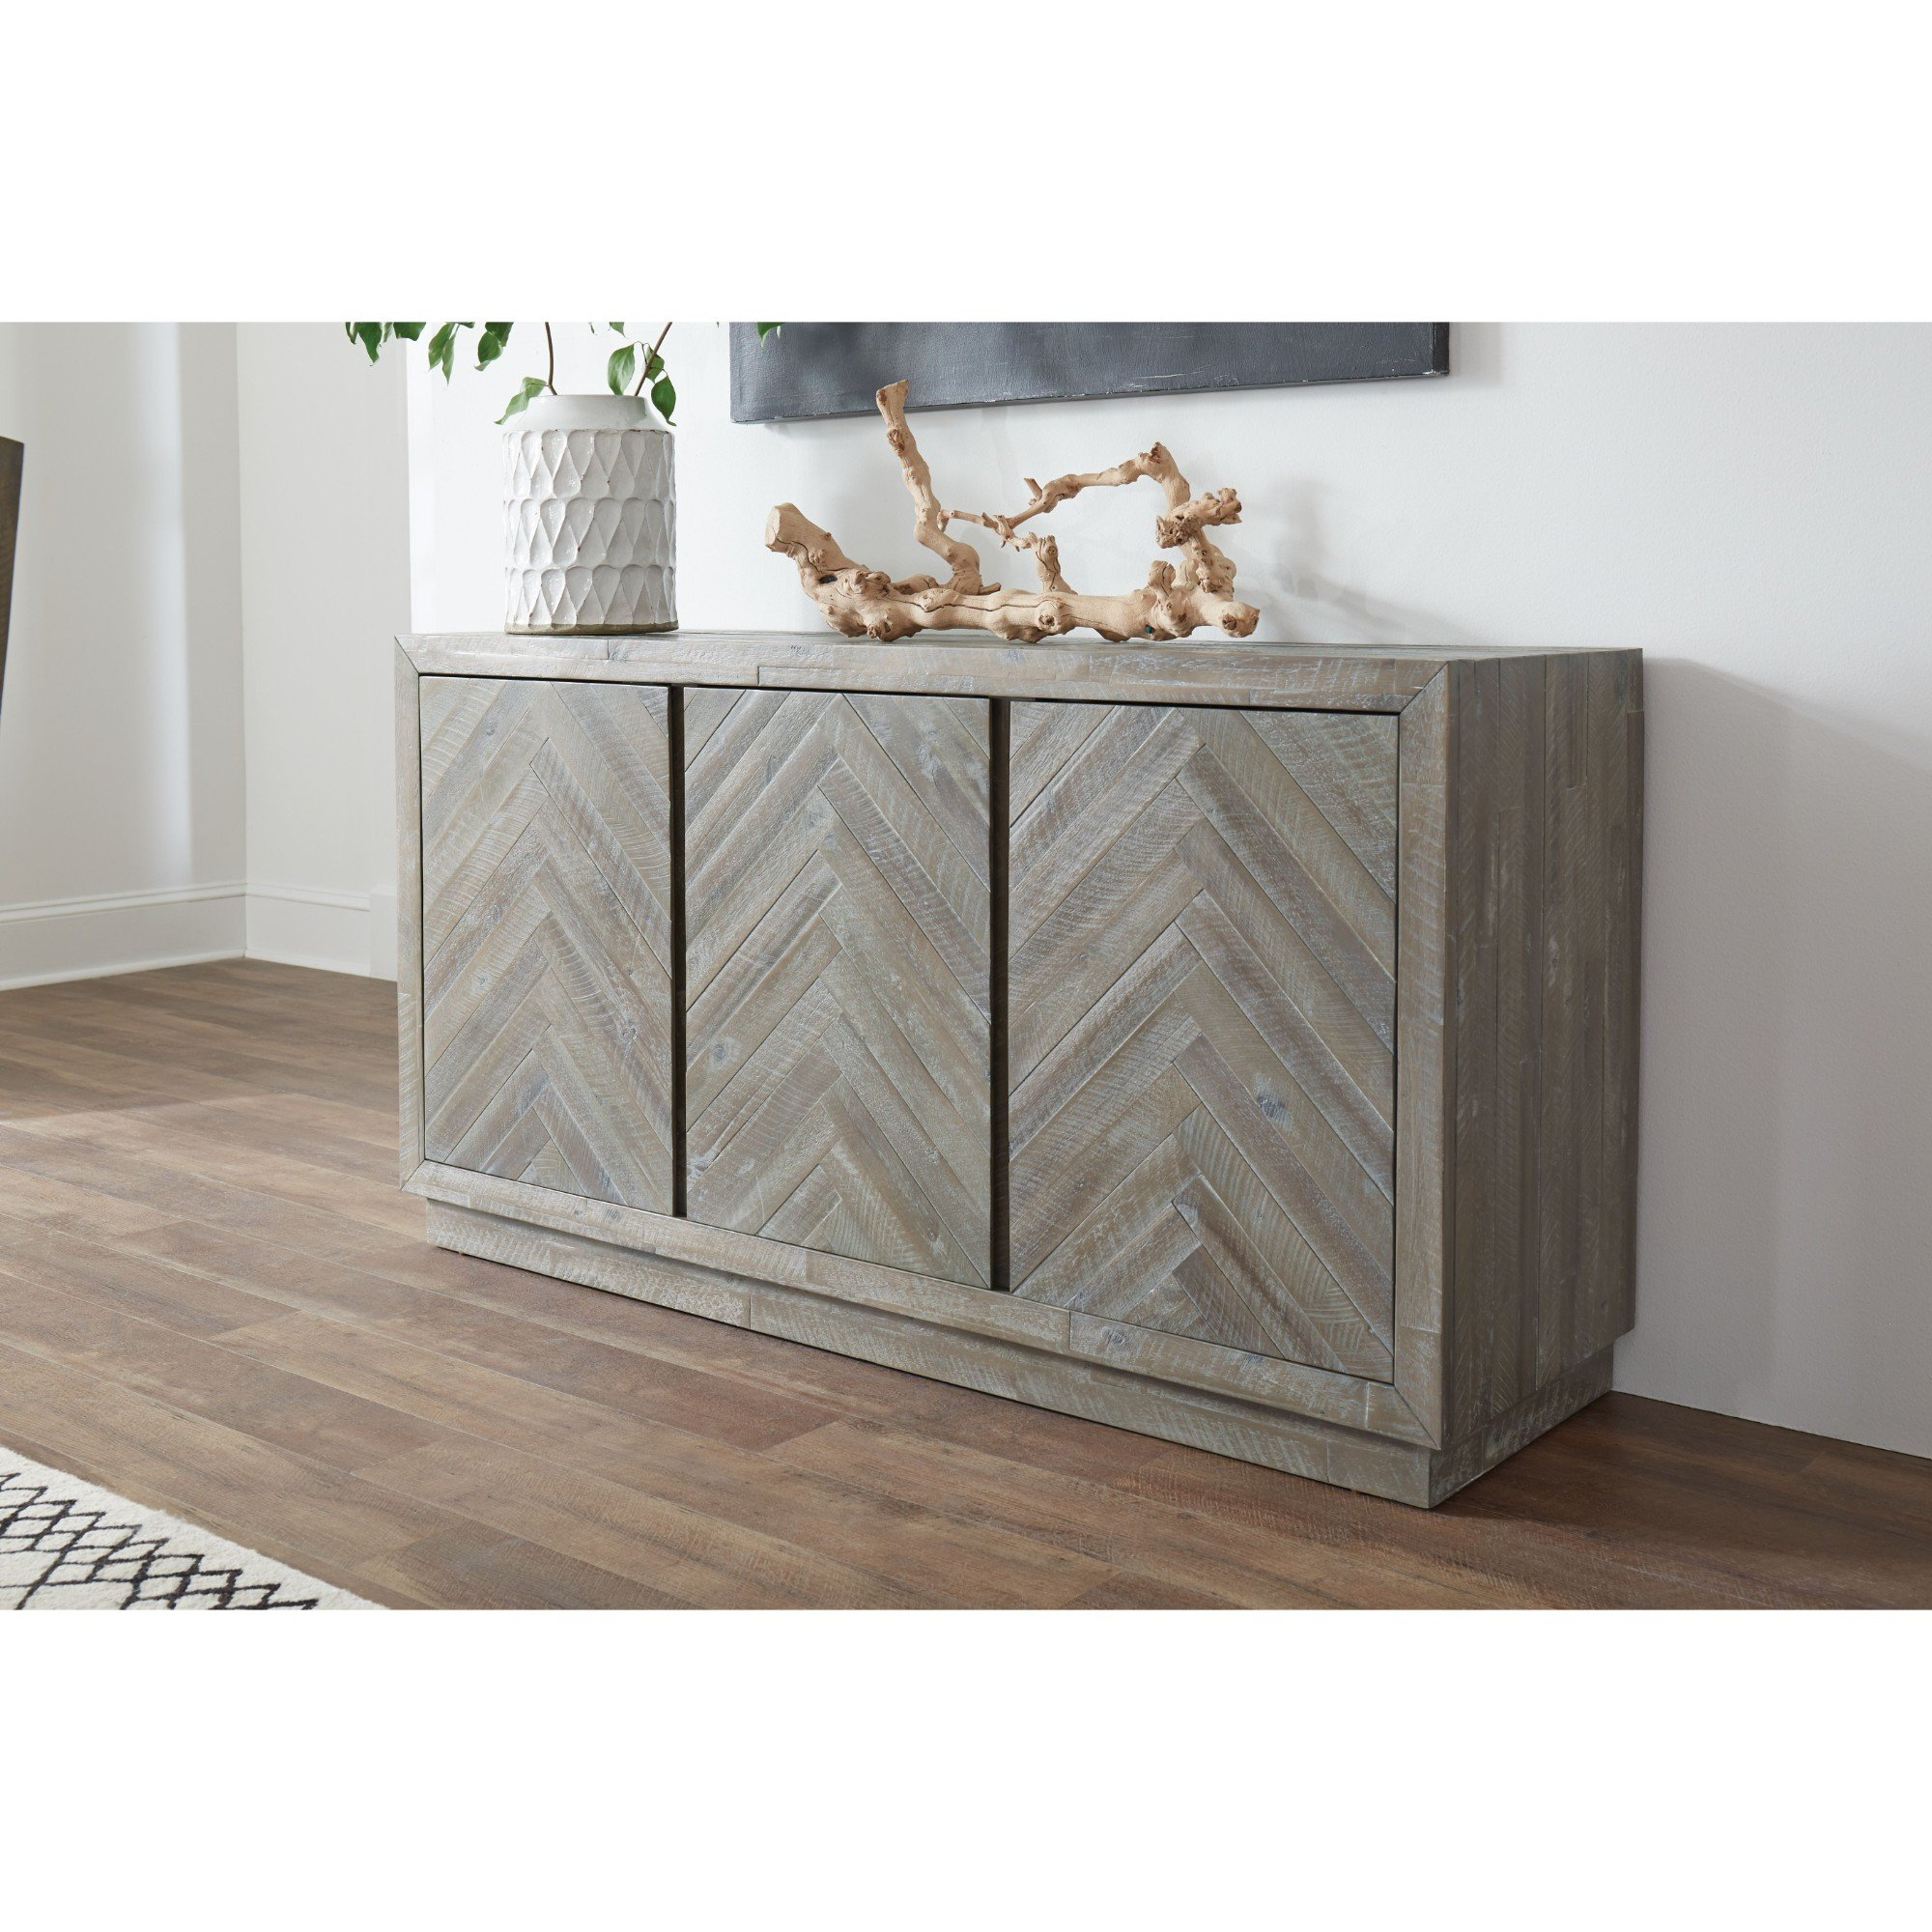 Staton Herringbone Pattern Wooden Sideboard Pertaining To 2017 Barr Credenzas (#20 of 20)